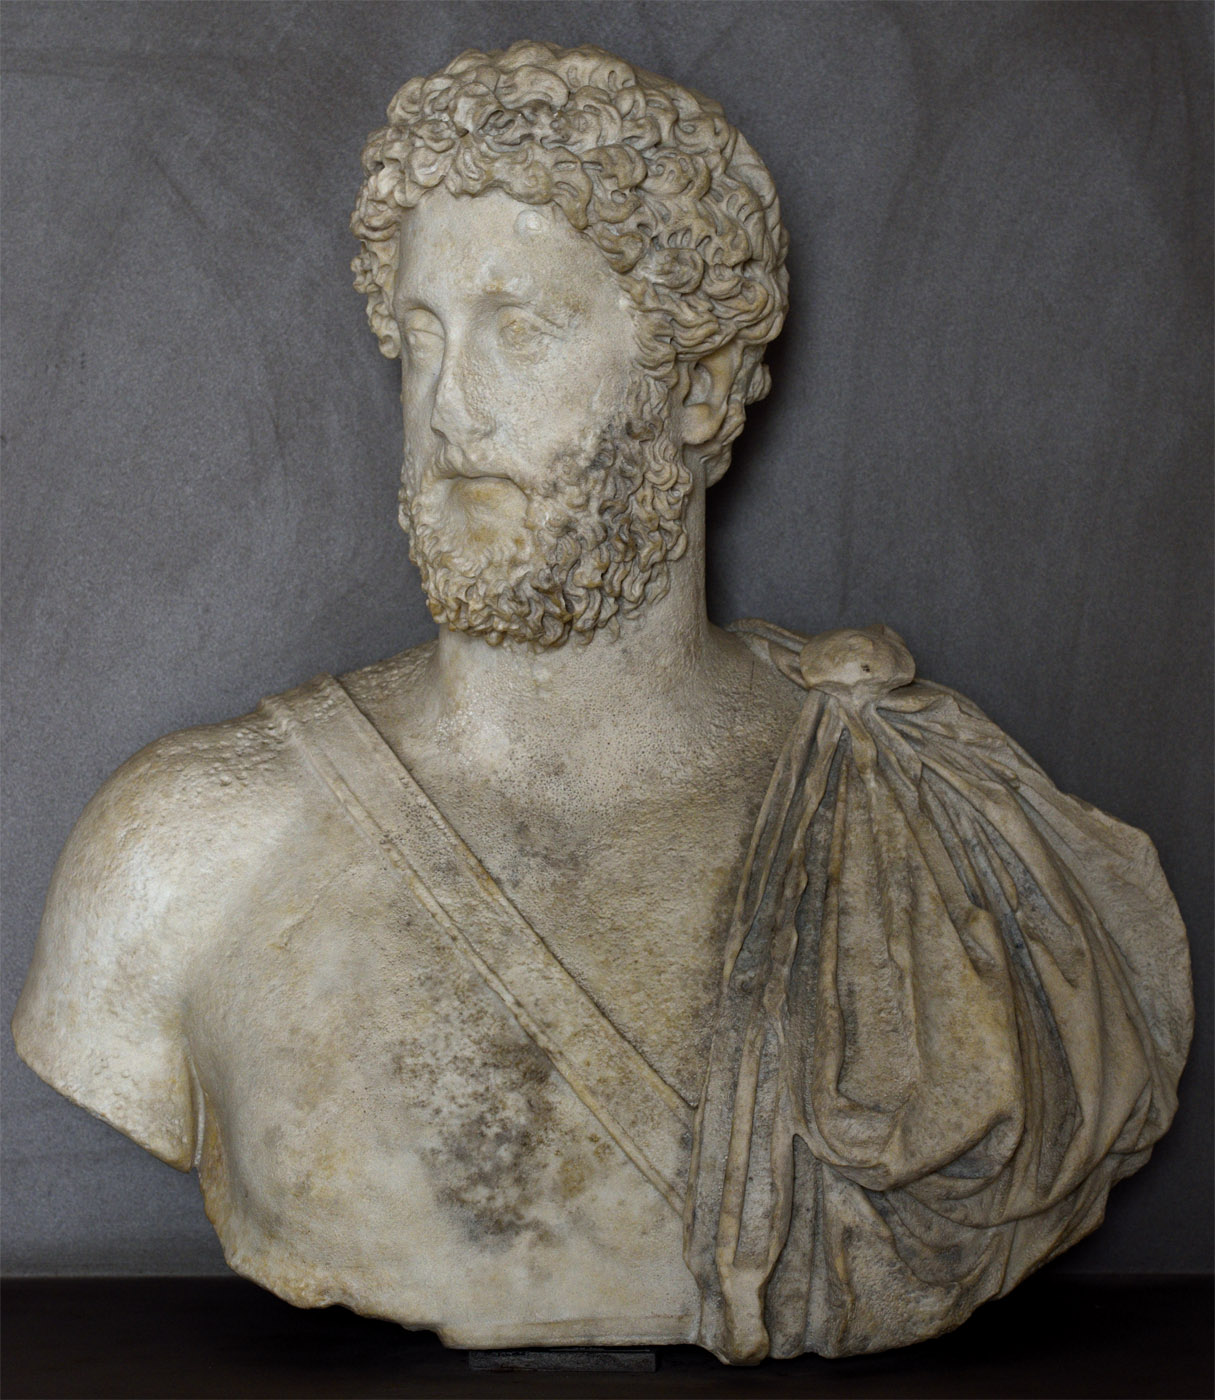 Bust of Commodus. Fine-grained white marble. Last quarter of the 2nd cent. CE. Baia, Archaeological Museum of the Phlegraean Fields